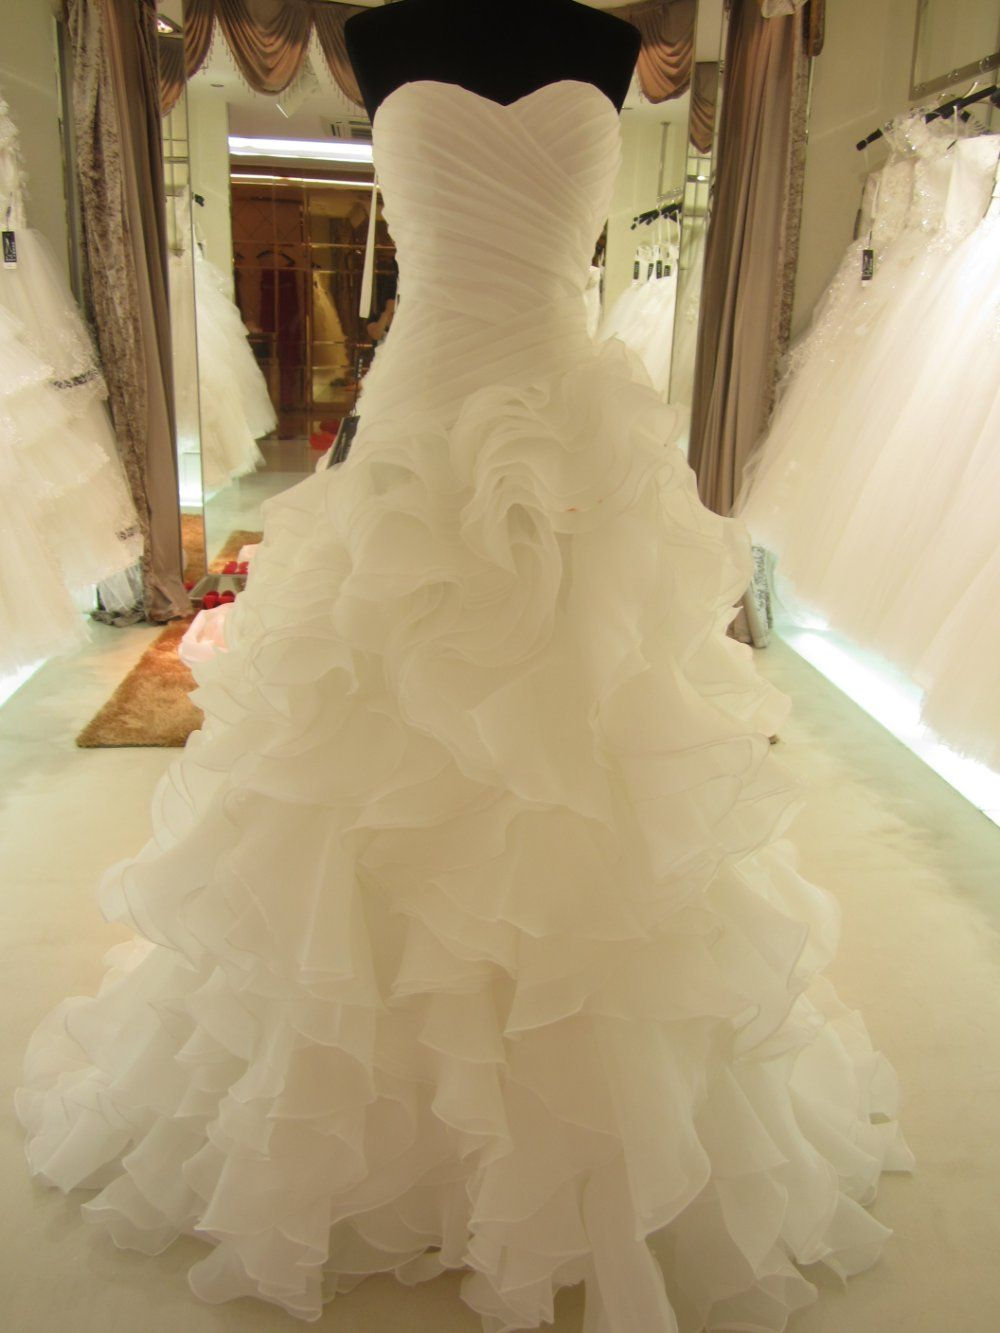 aliexpress wedding dresses Hot Sale Real Picture Organza Ruffle Wedding Dress Bridal Gown sl on